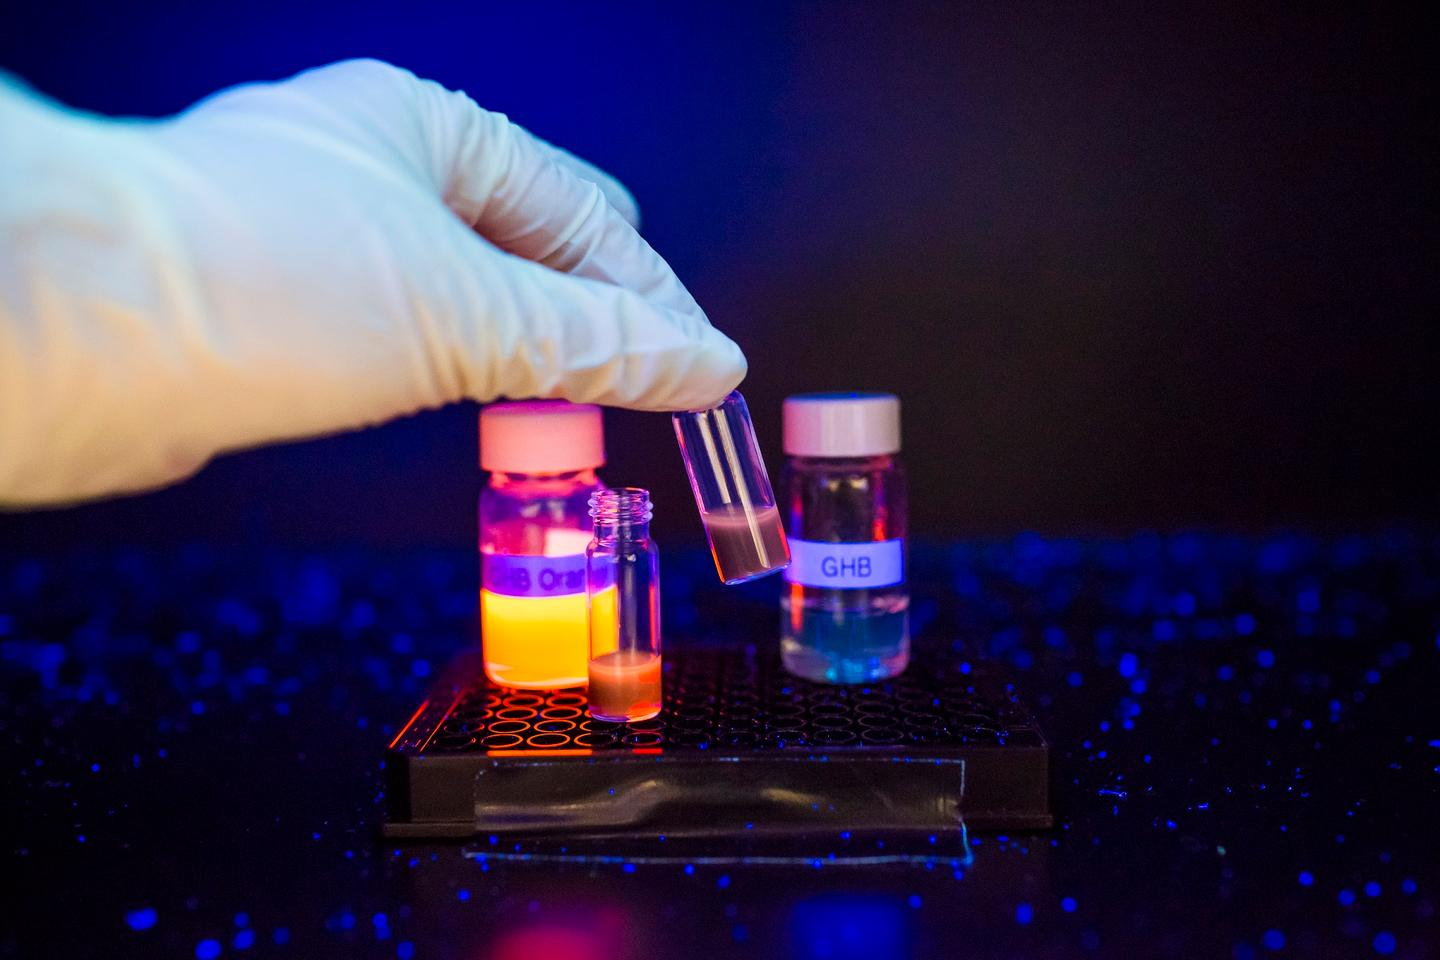 In testing the fluorescent compound, the team observed a difference in the intensity of the fluorescence between the drinks containing GHB and those without (Photo: National University of Singapore)